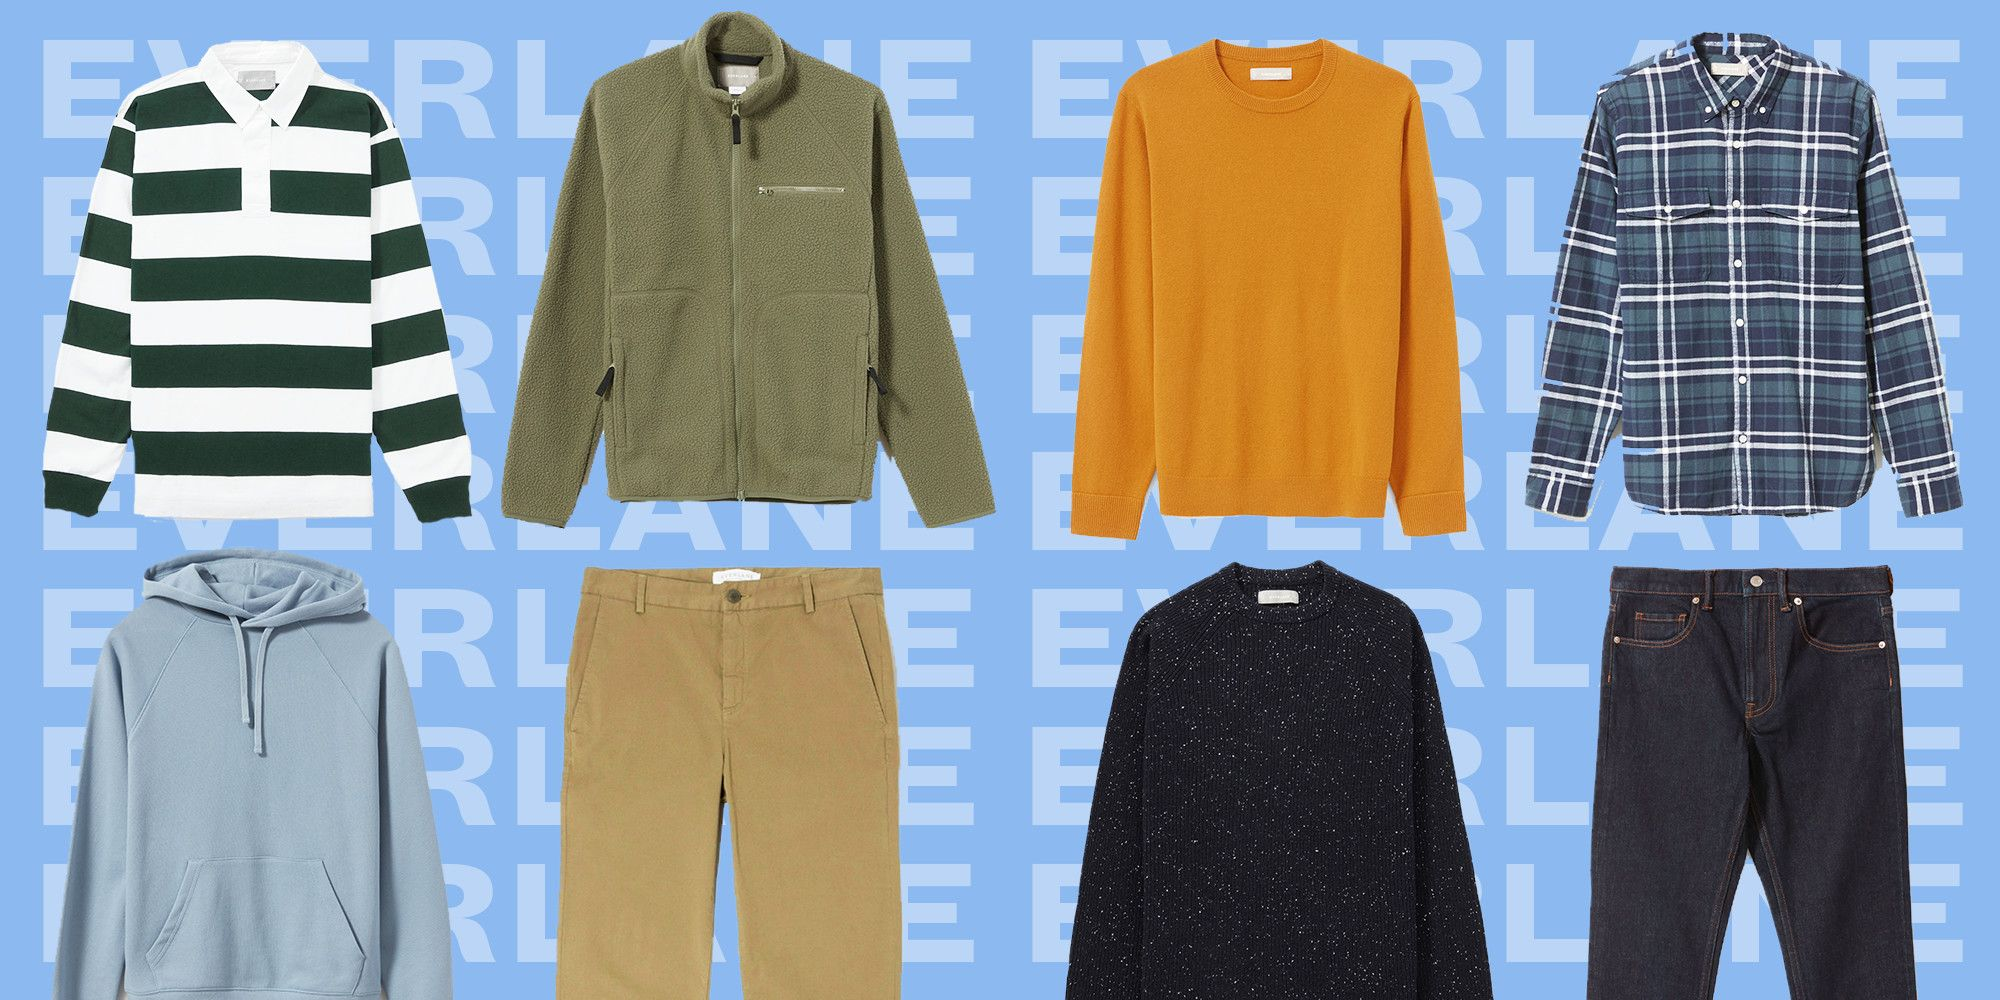 The 17 Best Picks from Everlane's Huge 'Choose What You Pay' Sale